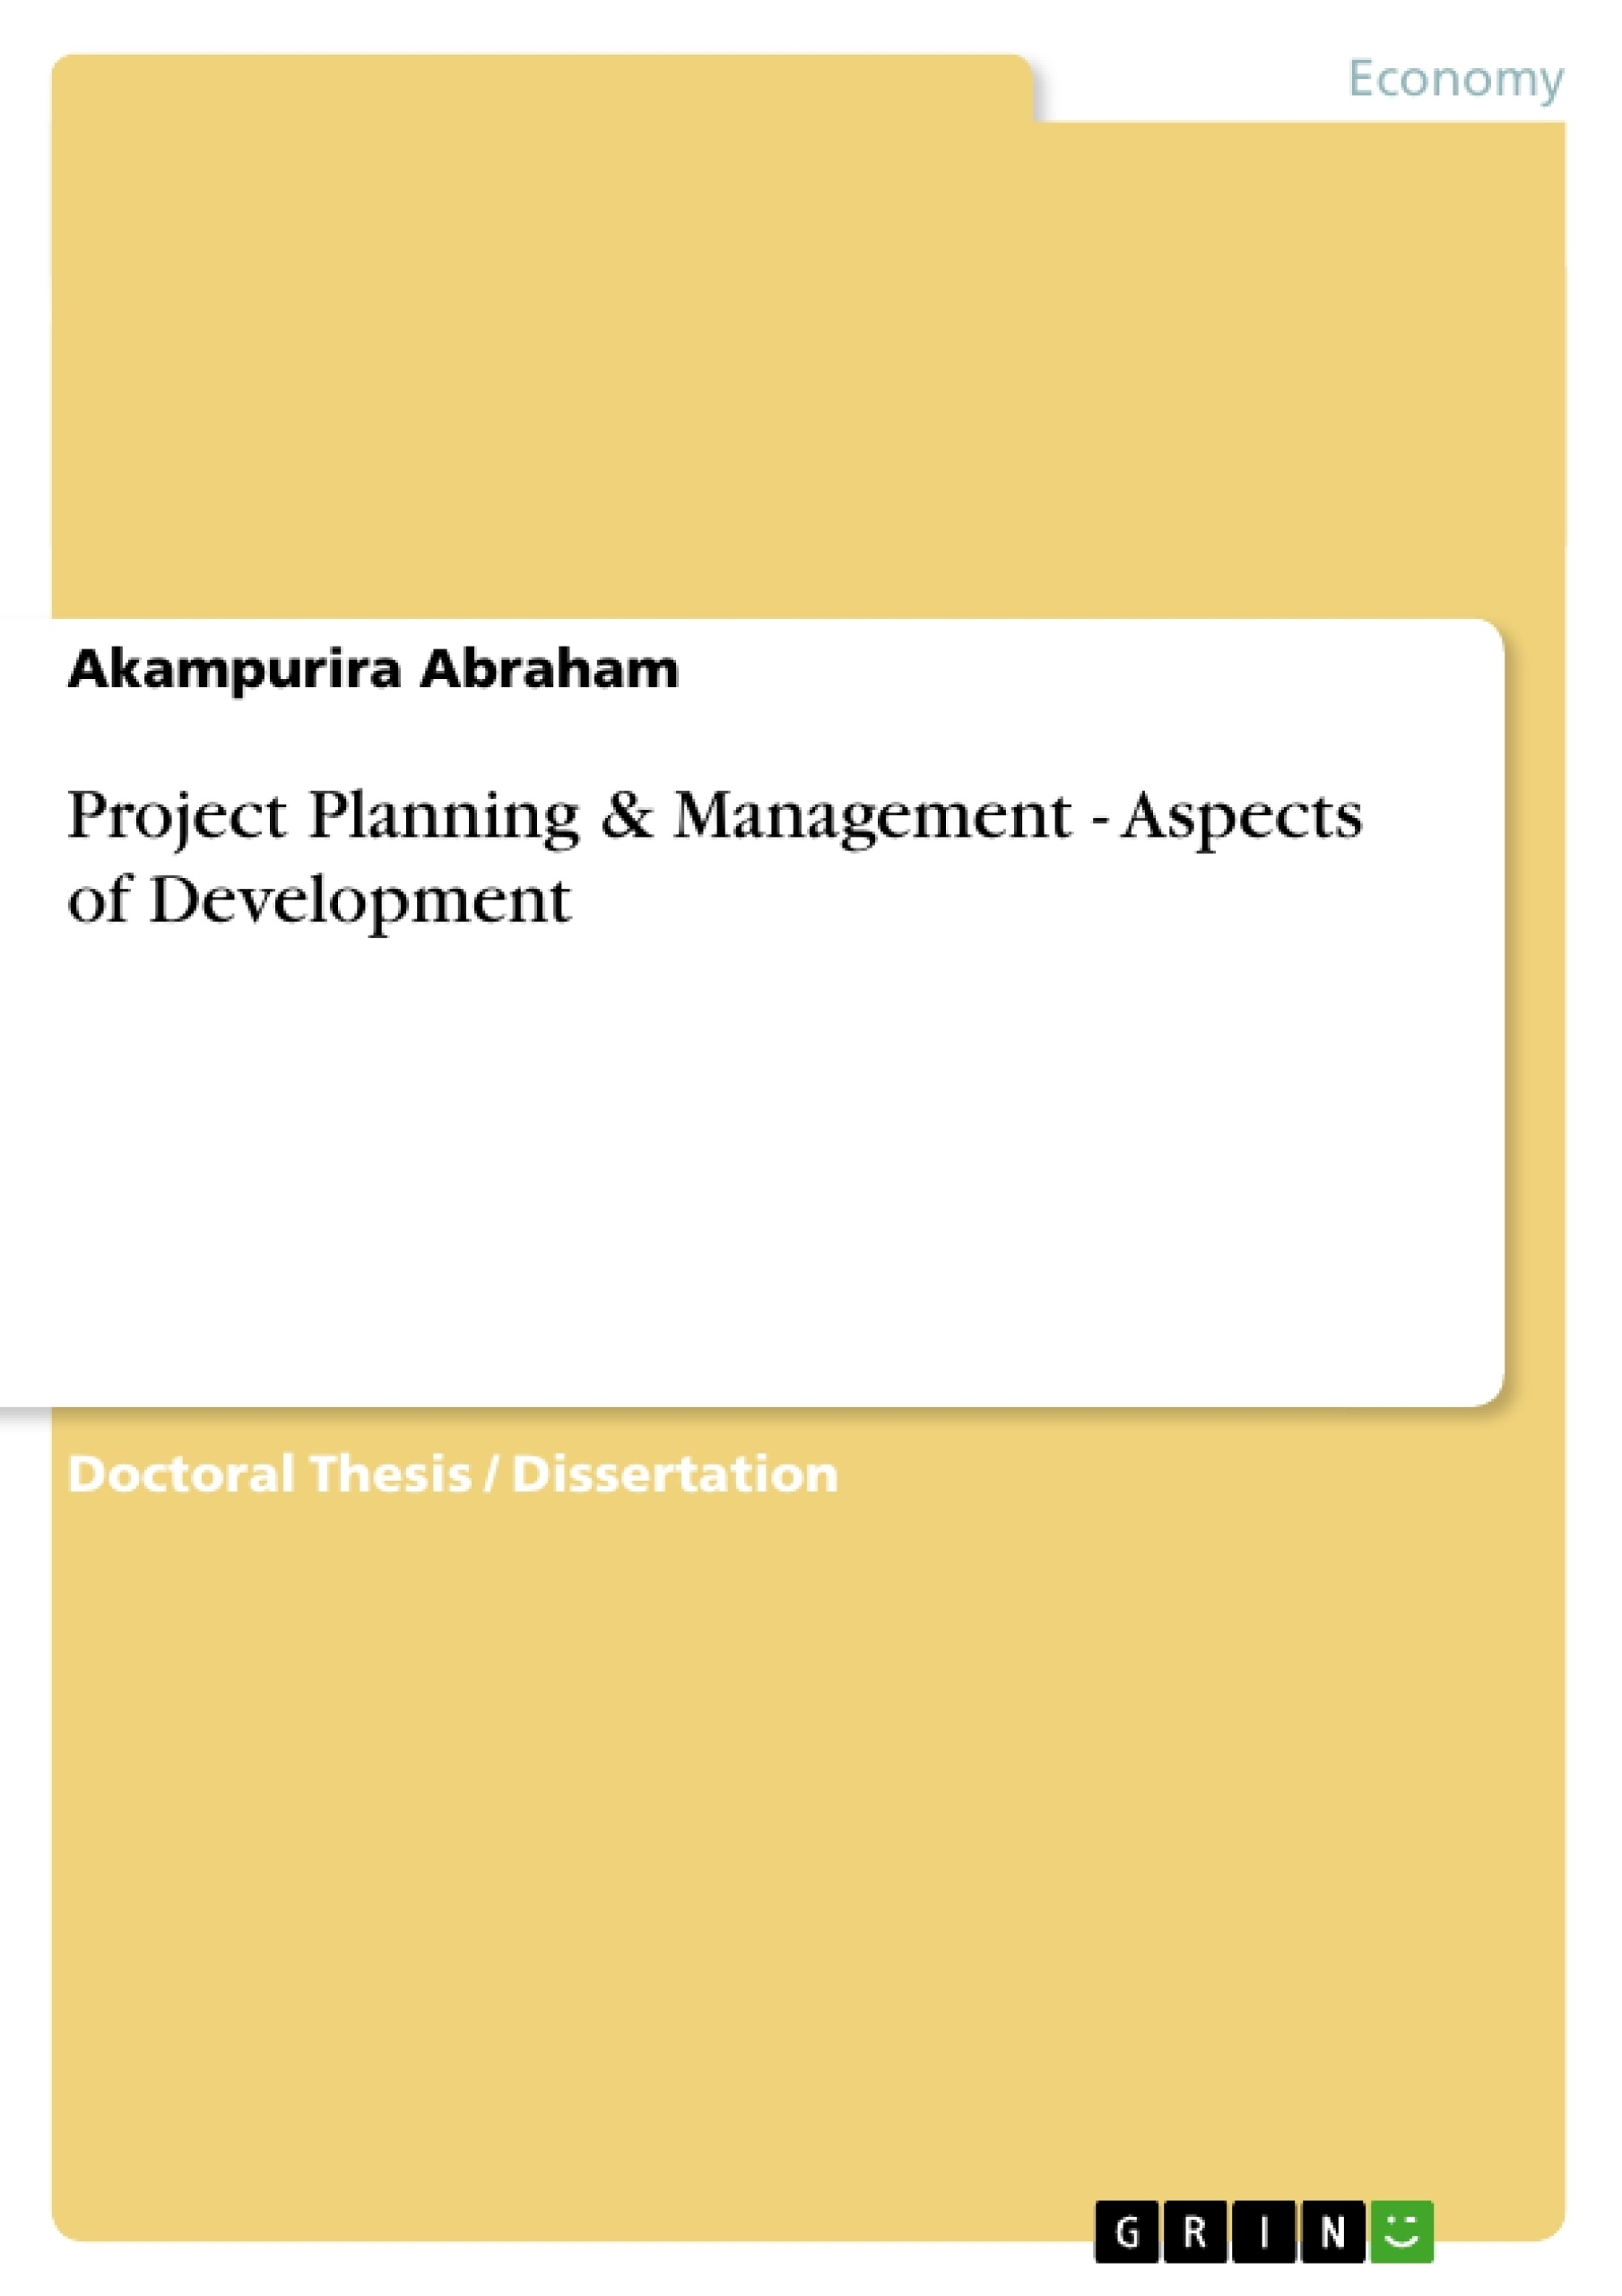 Manual abe strategic business management and planning ebook project management ebook how to create project plans array project planning u0026 management aspects of development publish rh fandeluxe Images